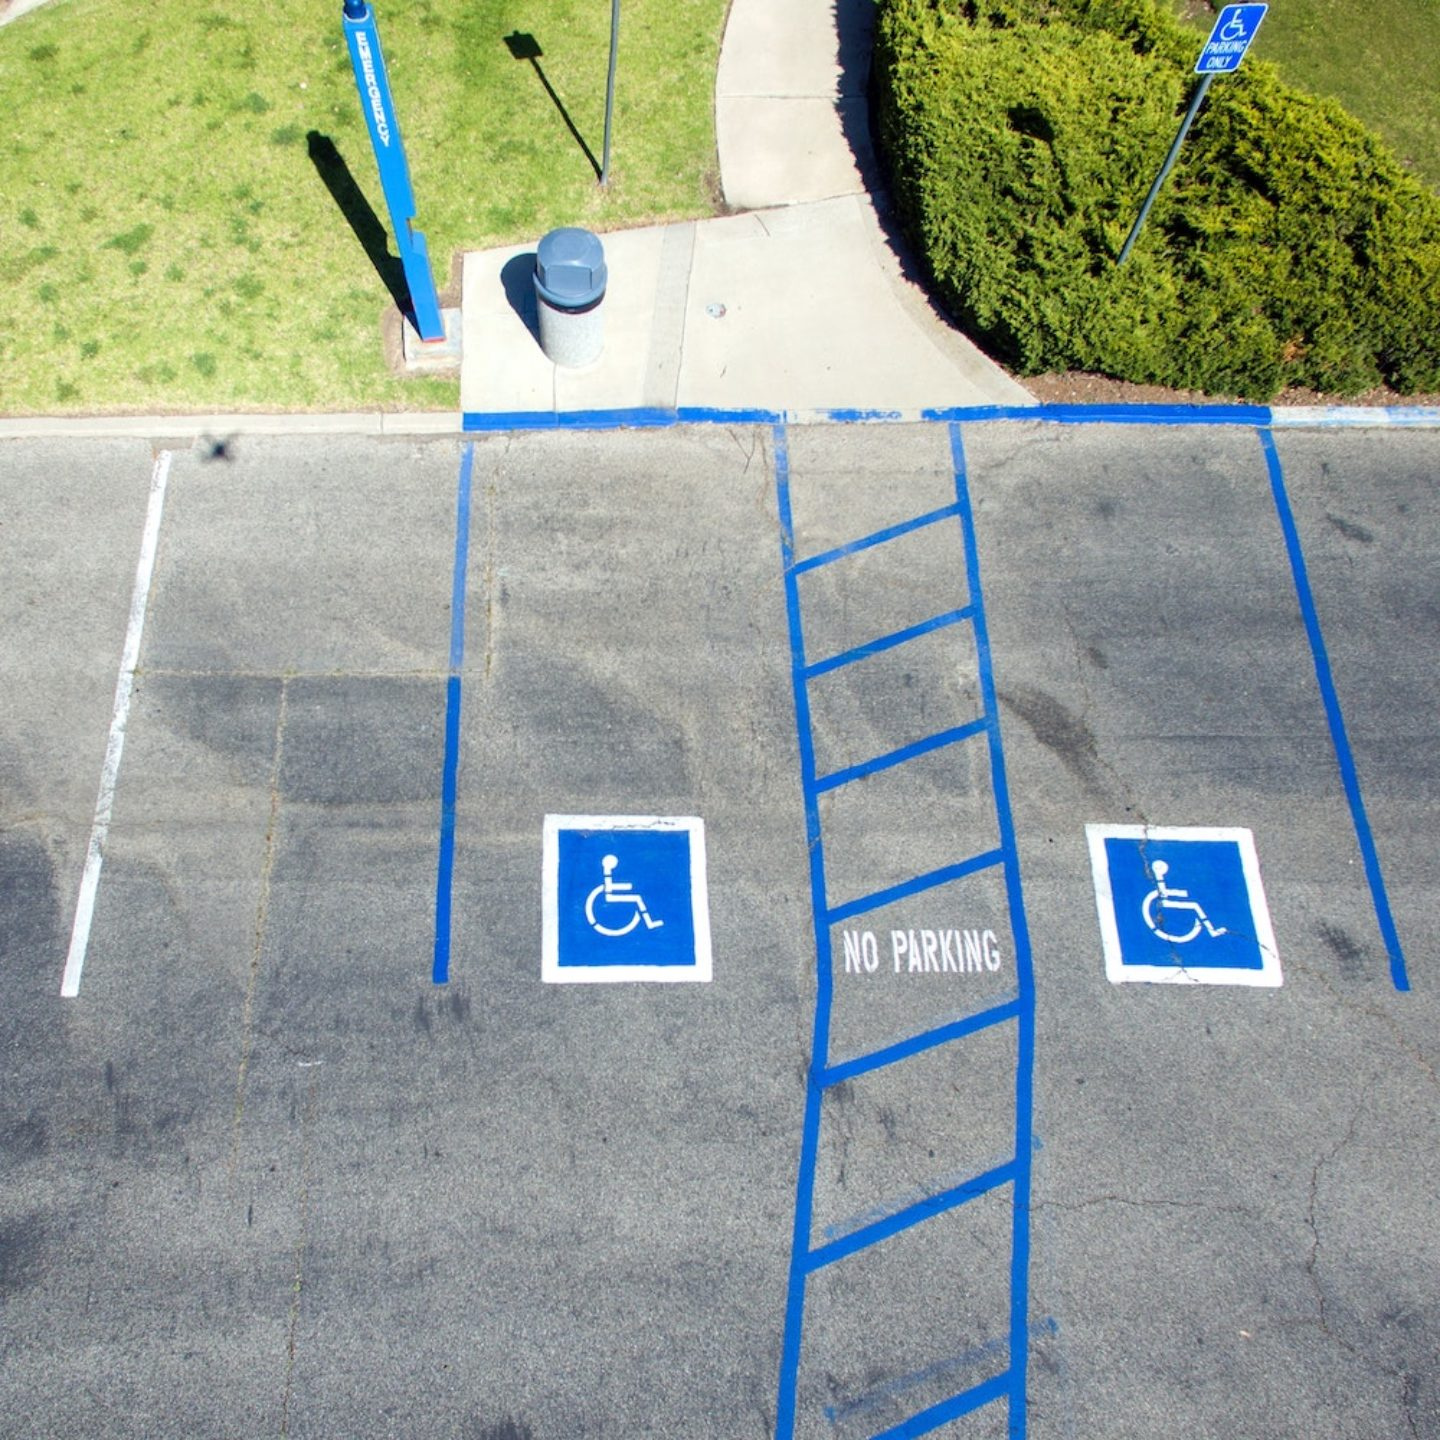 parking lot with international symbol of access and access ways painted